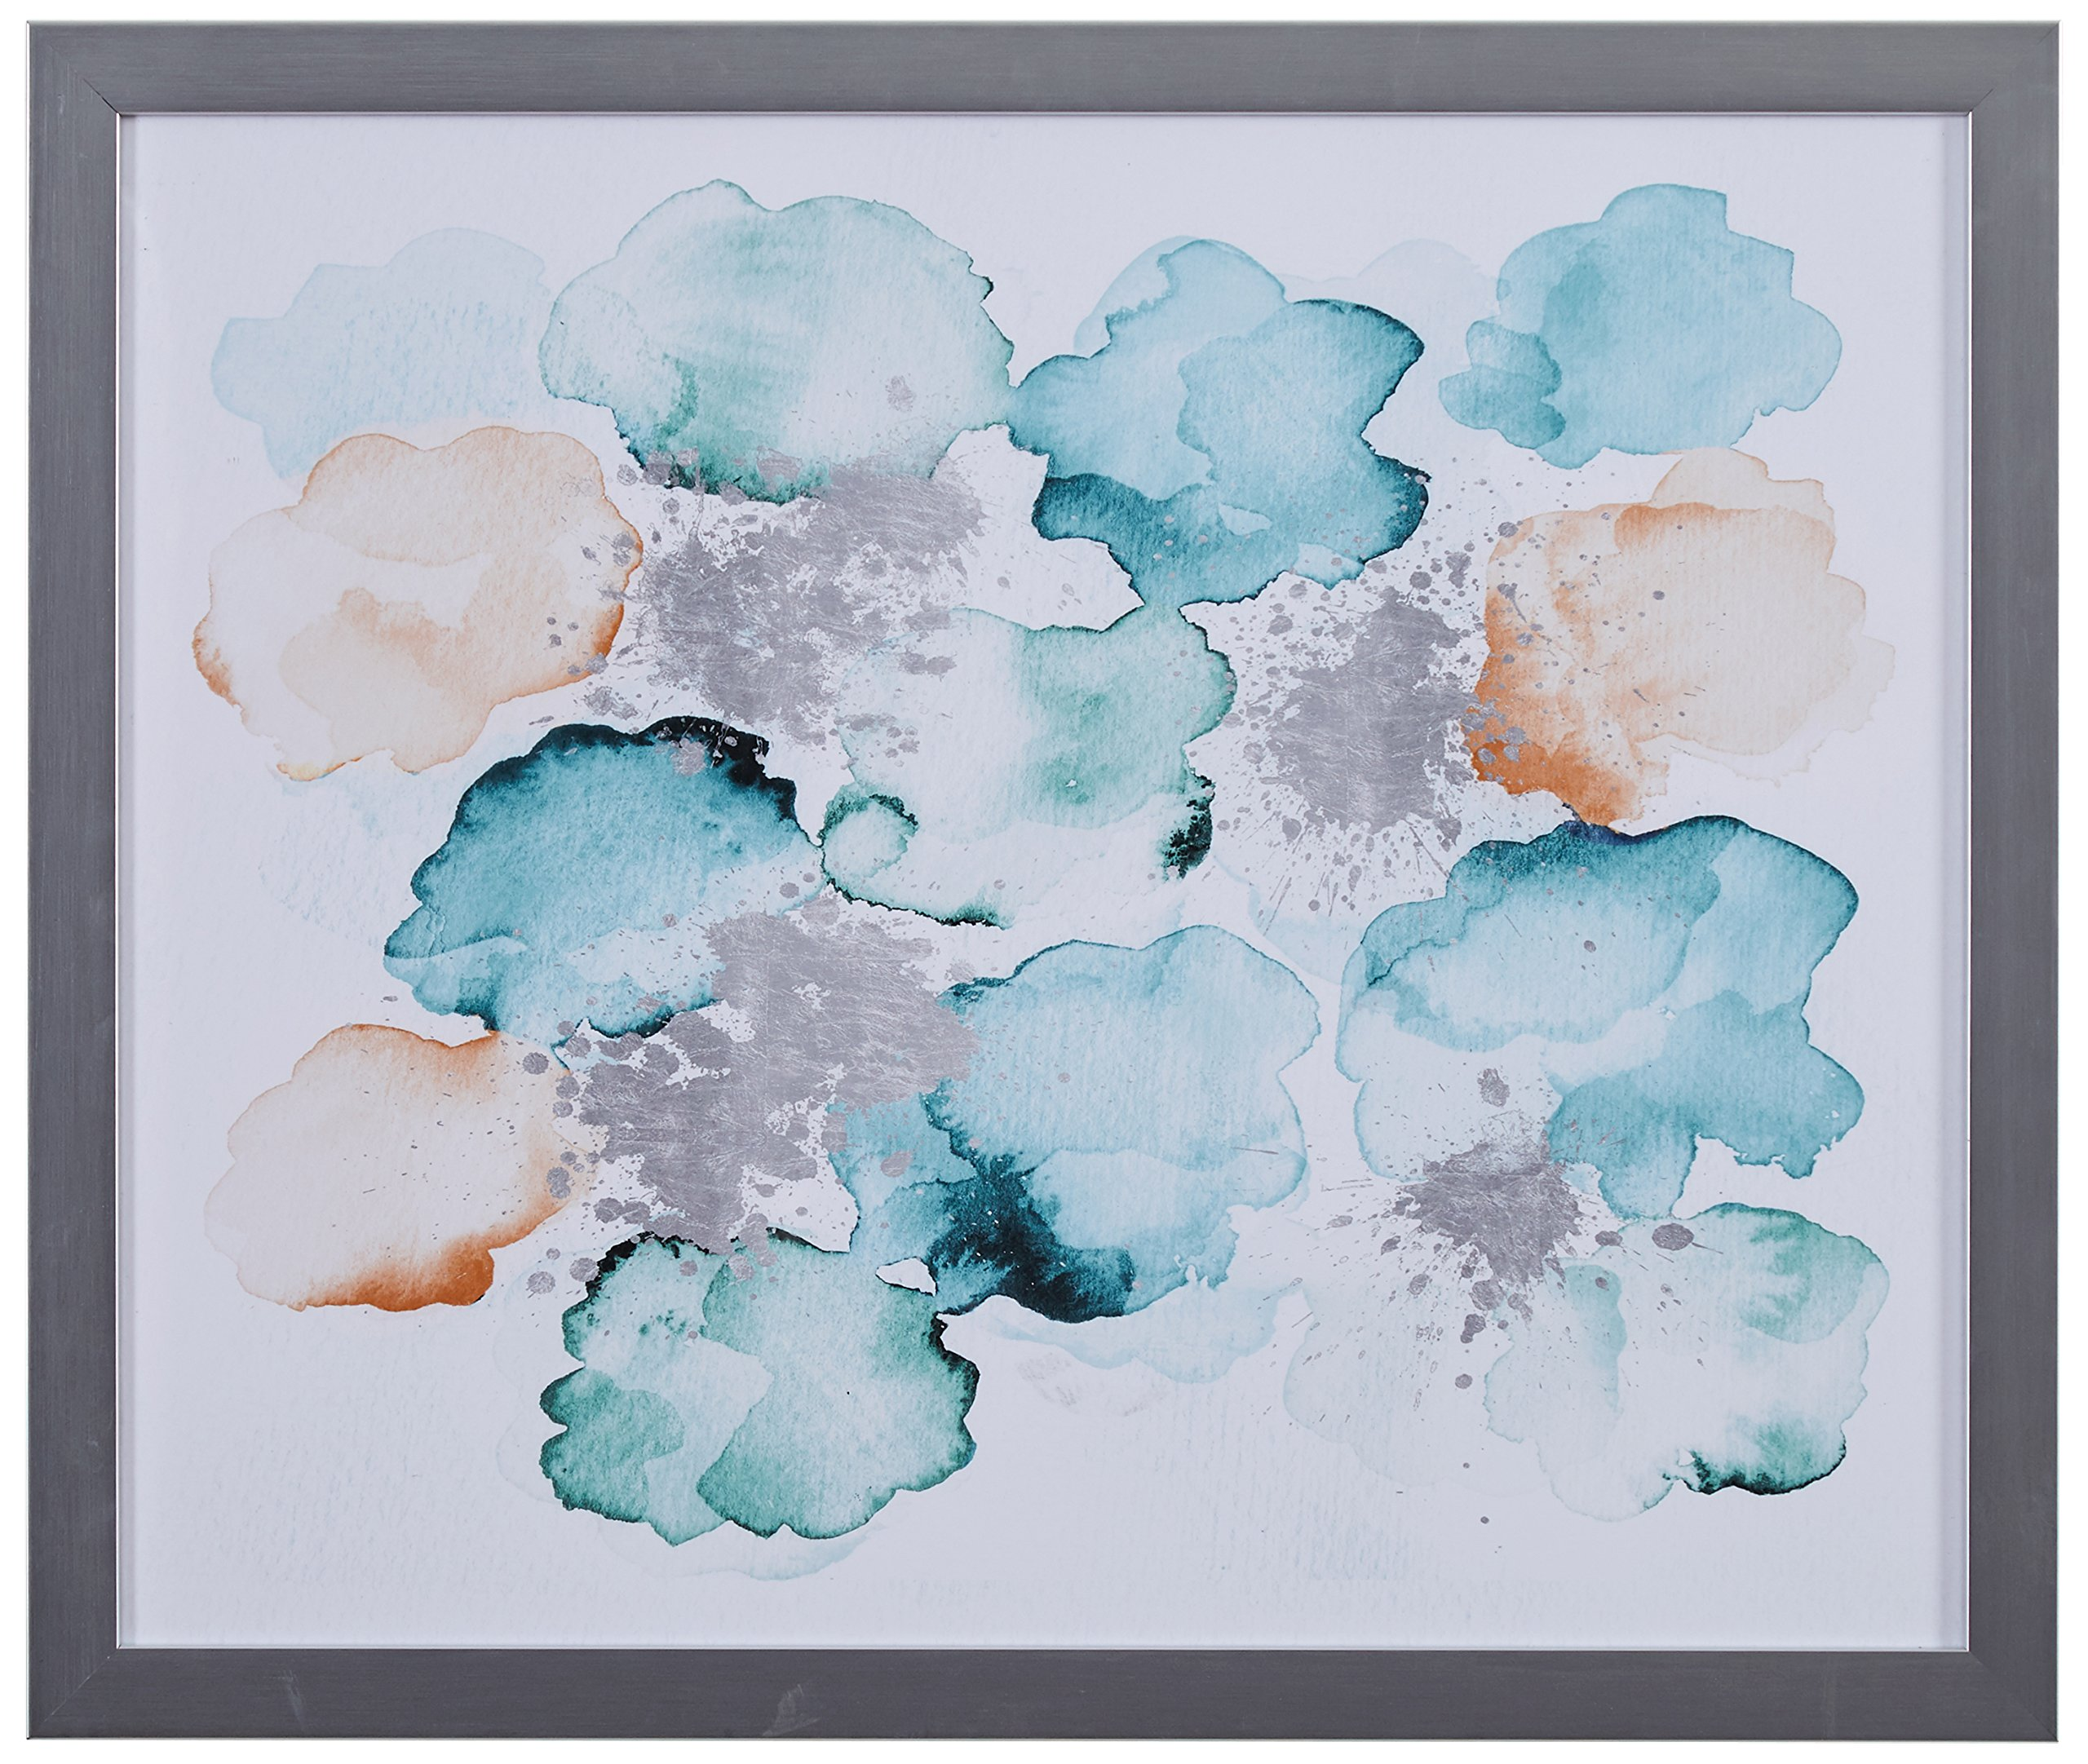 Modern Abstract Turquoise and Tan Print in Silver Colored Frame, 15'' x 18'' by Stone & Beam